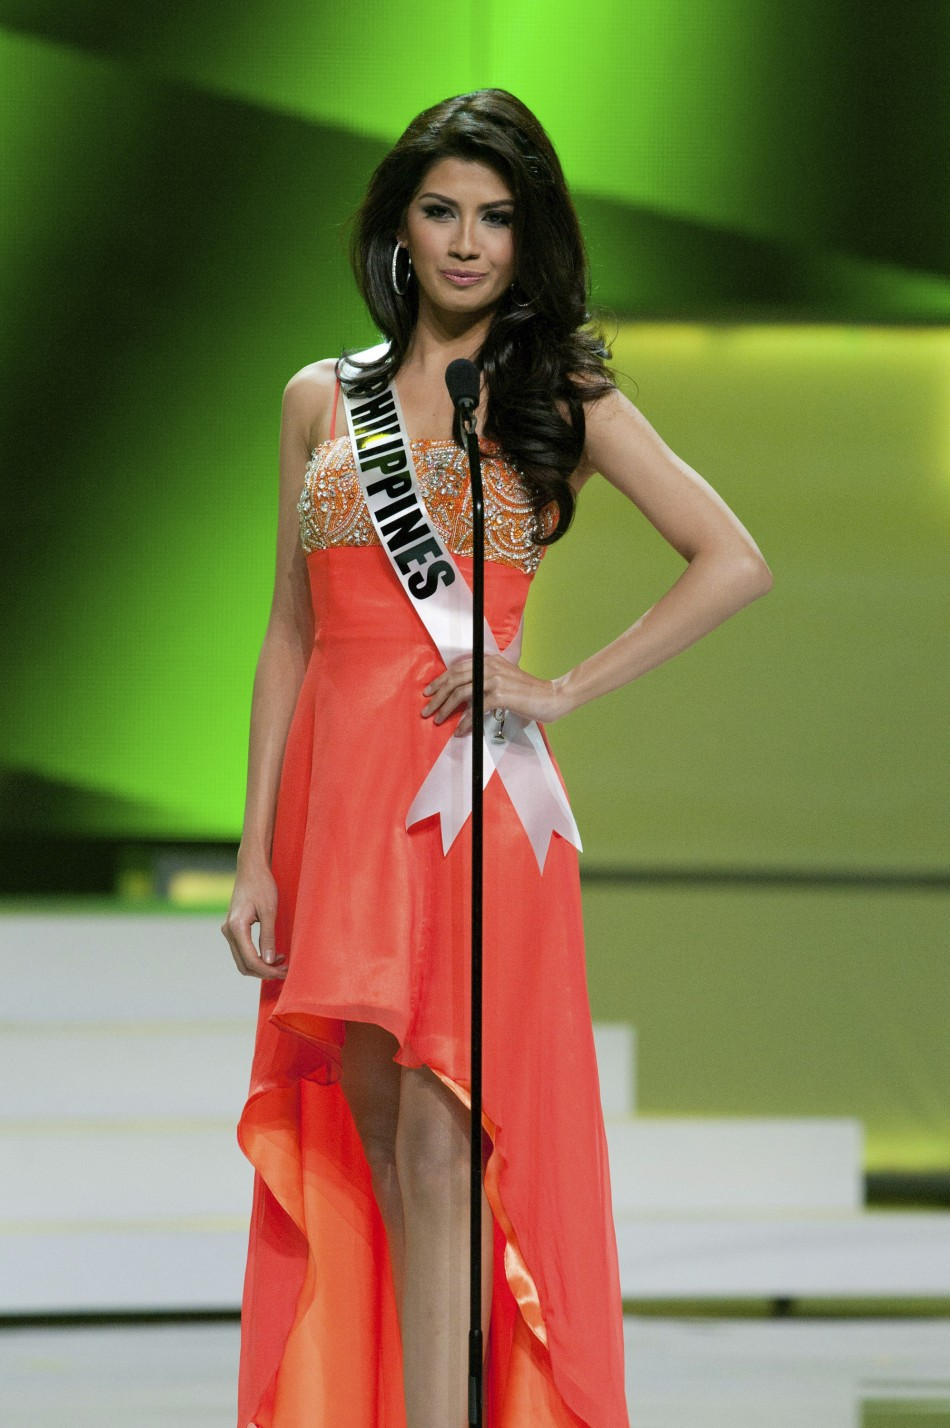 2011 Most Beautiful Girls: Miss Universe 2011: Top Three Most Popular Voted